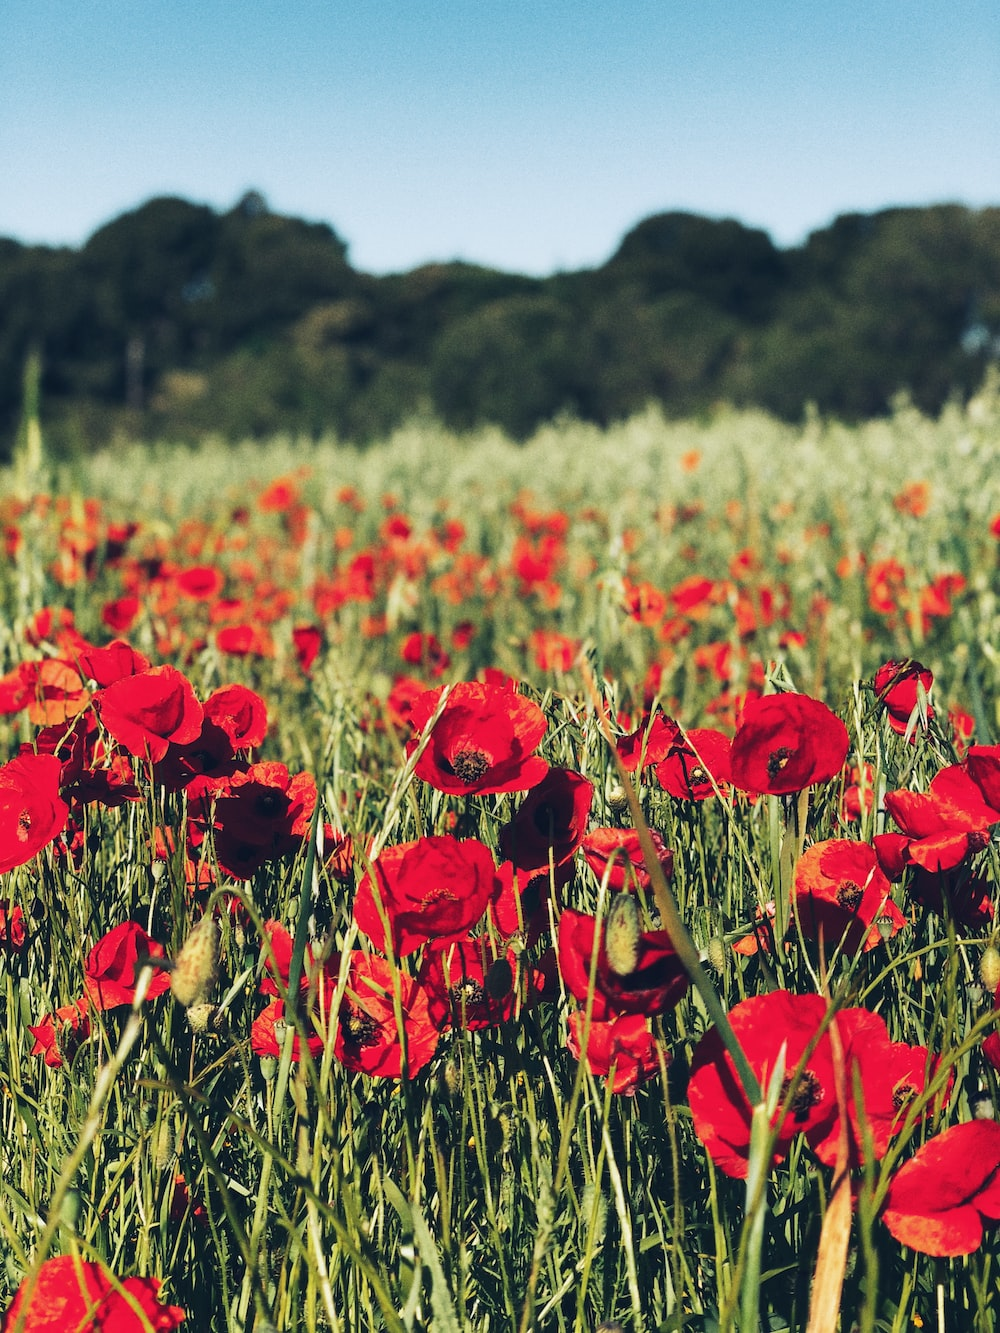 close up photo of red poppy flower field at daytime